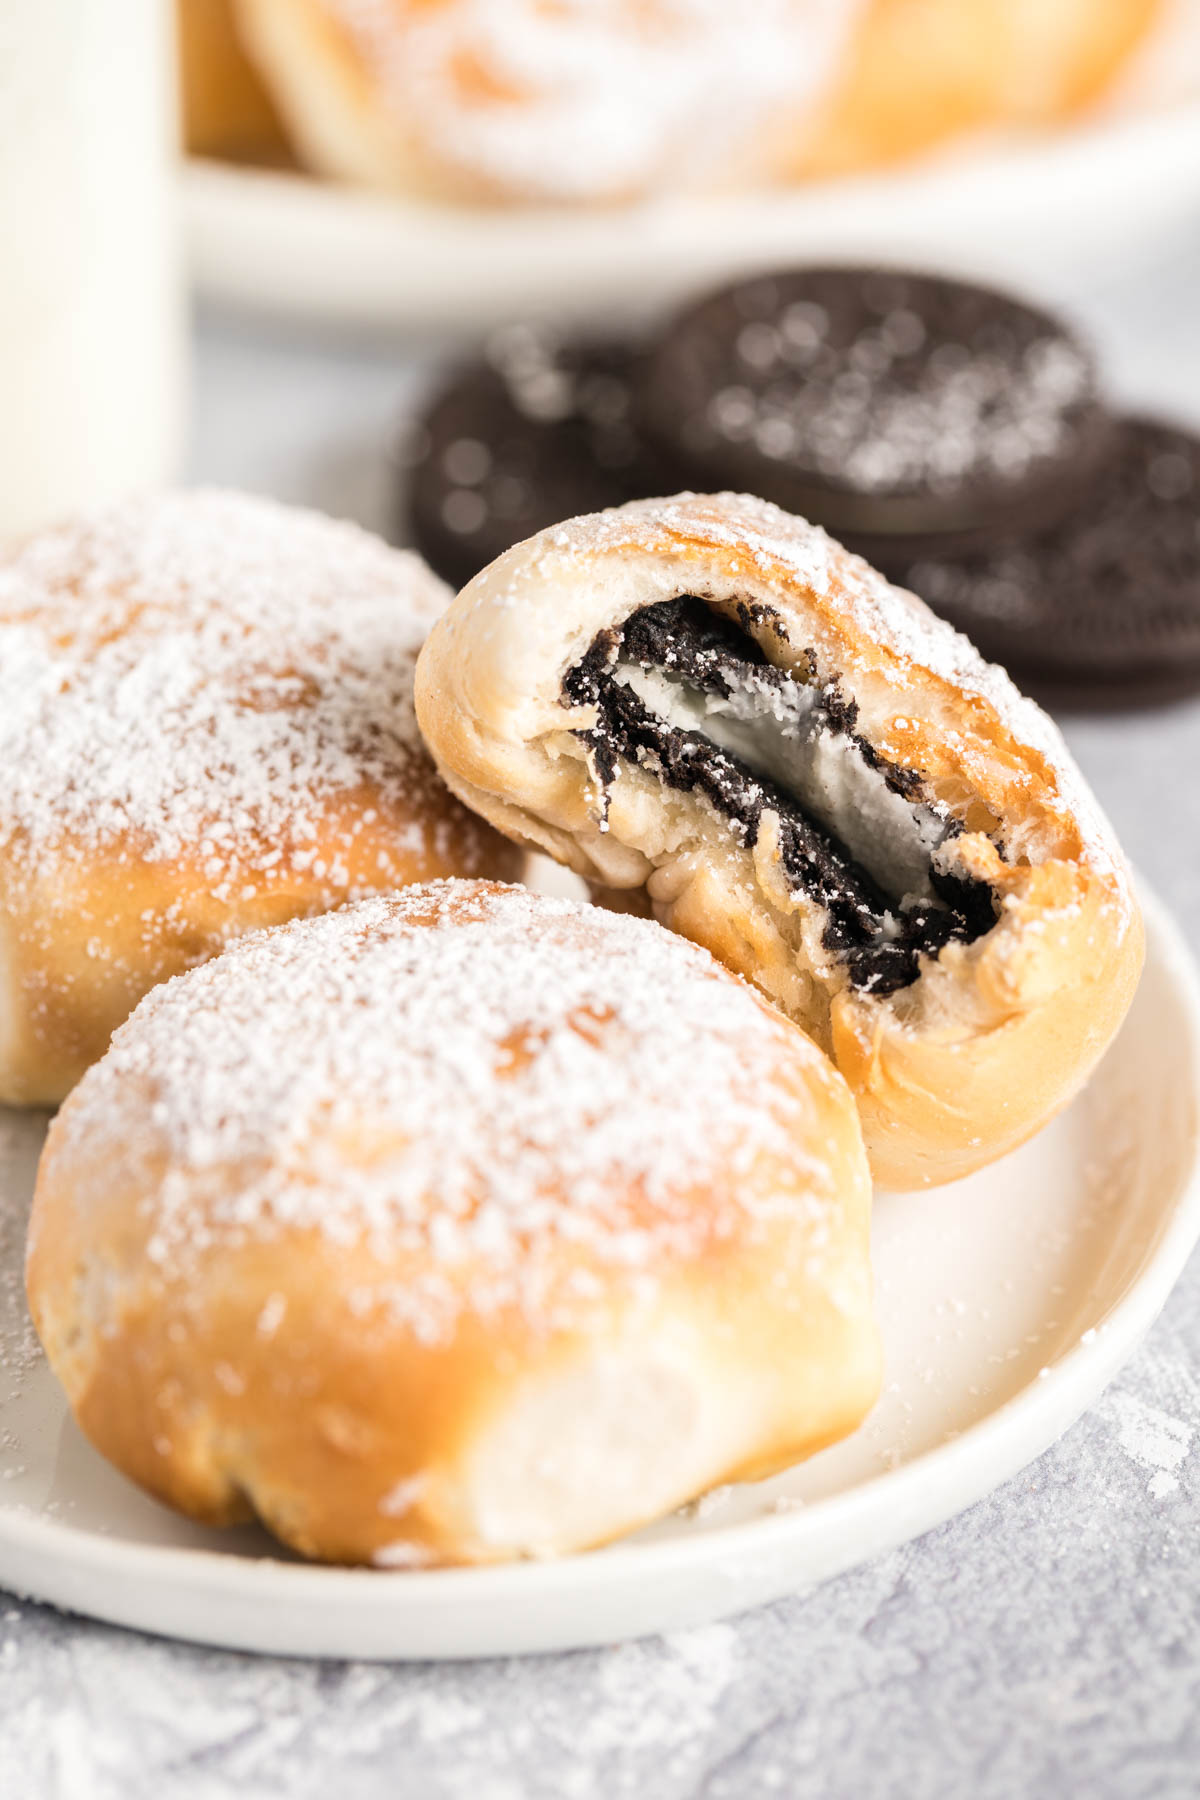 Oreo Cookies wrapped in dough and sprinkled with powdered sugar on a plate.